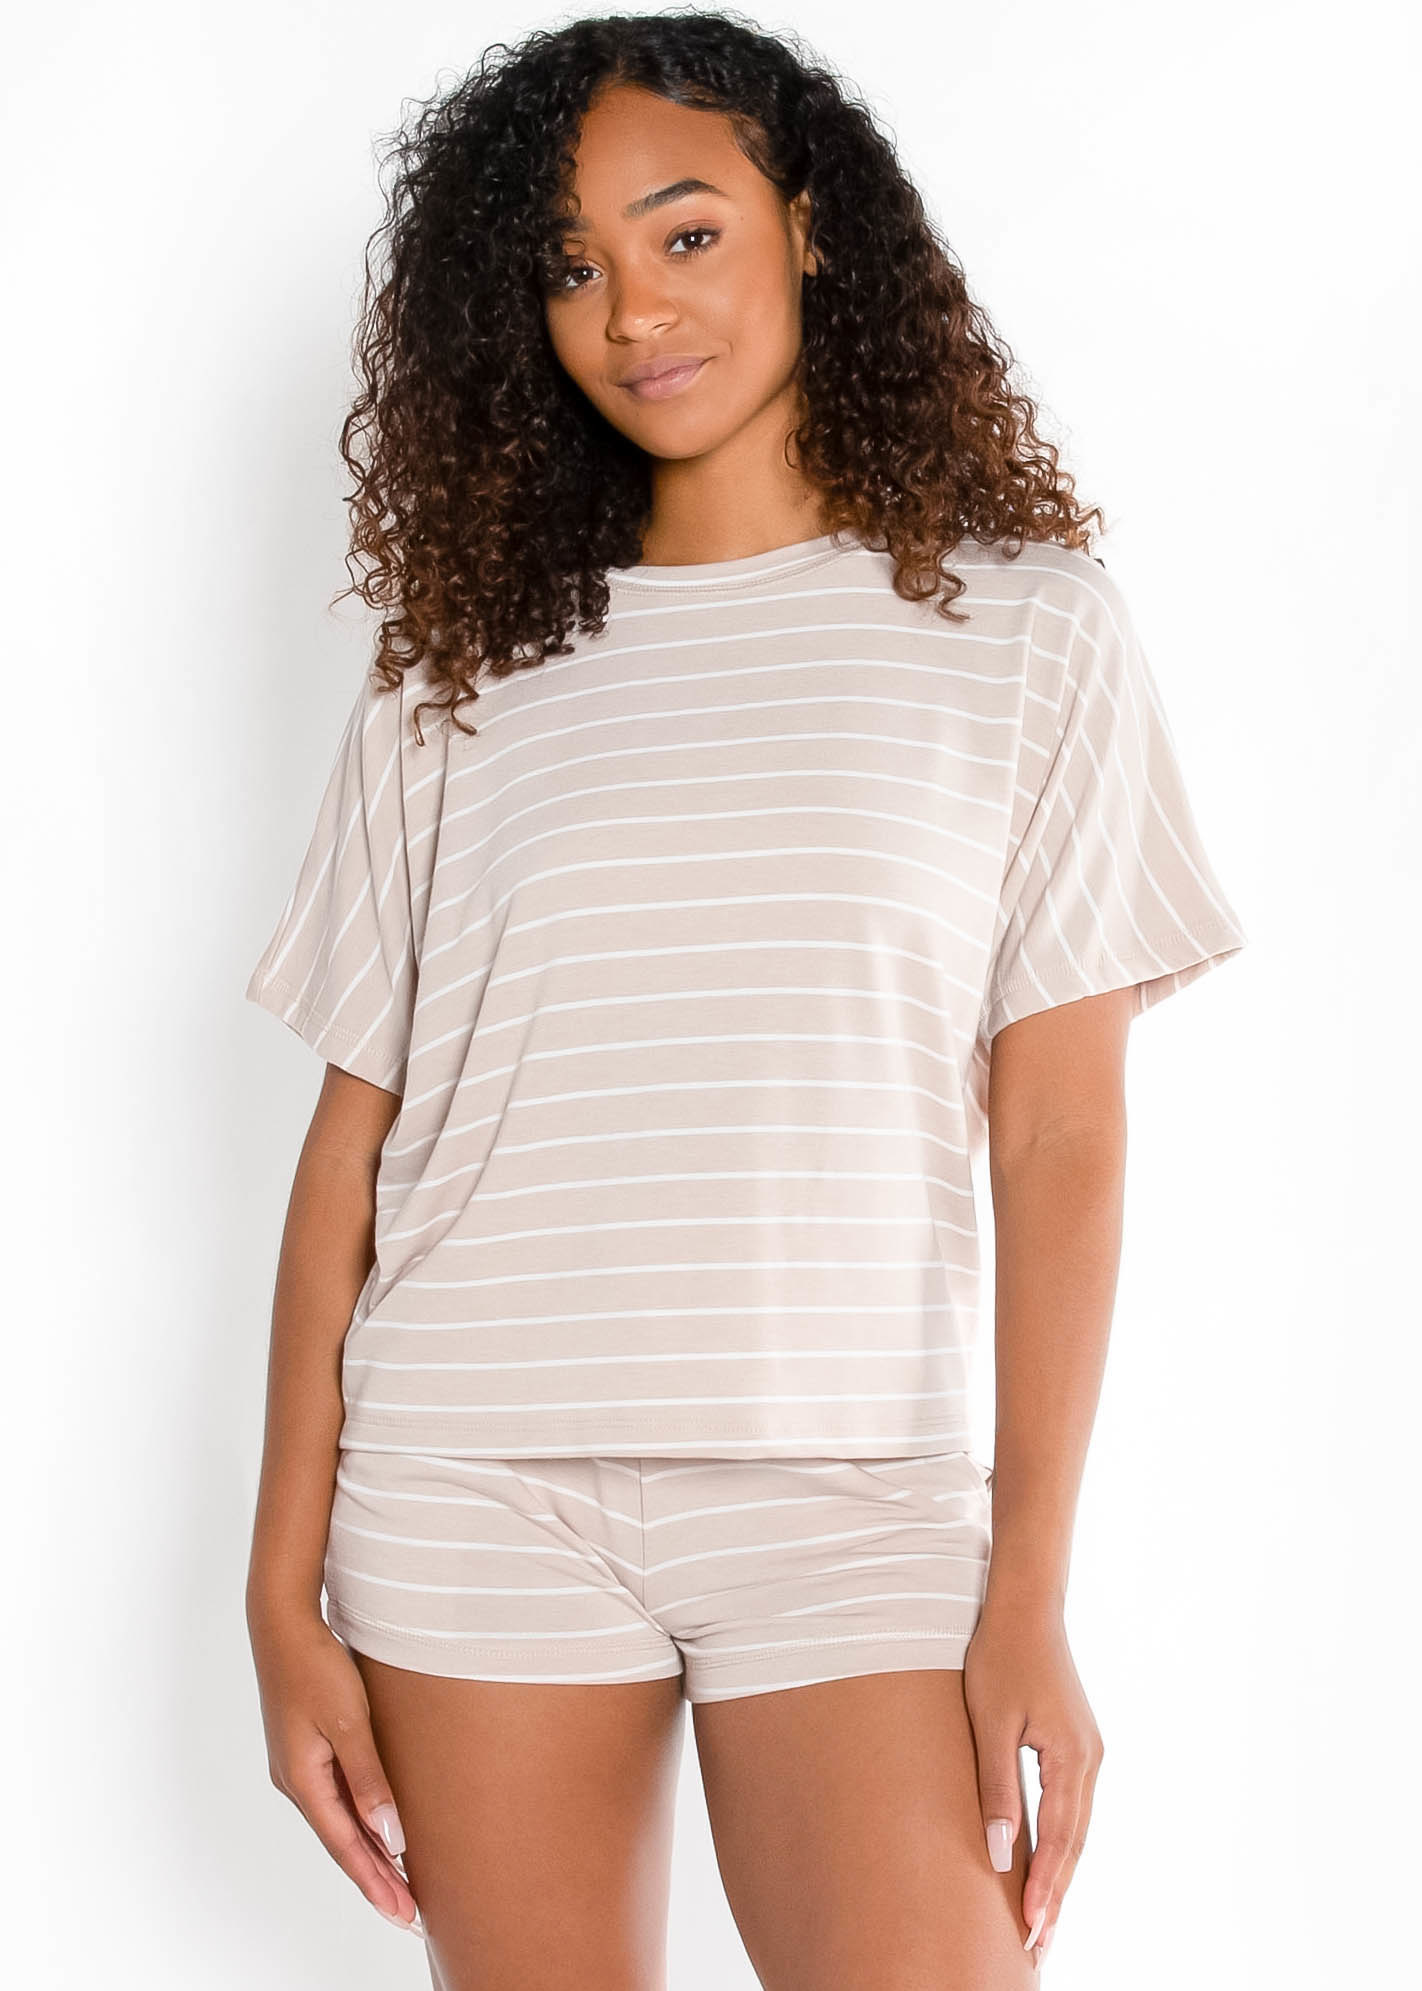 LIFE OF EASE STRIPED TOP